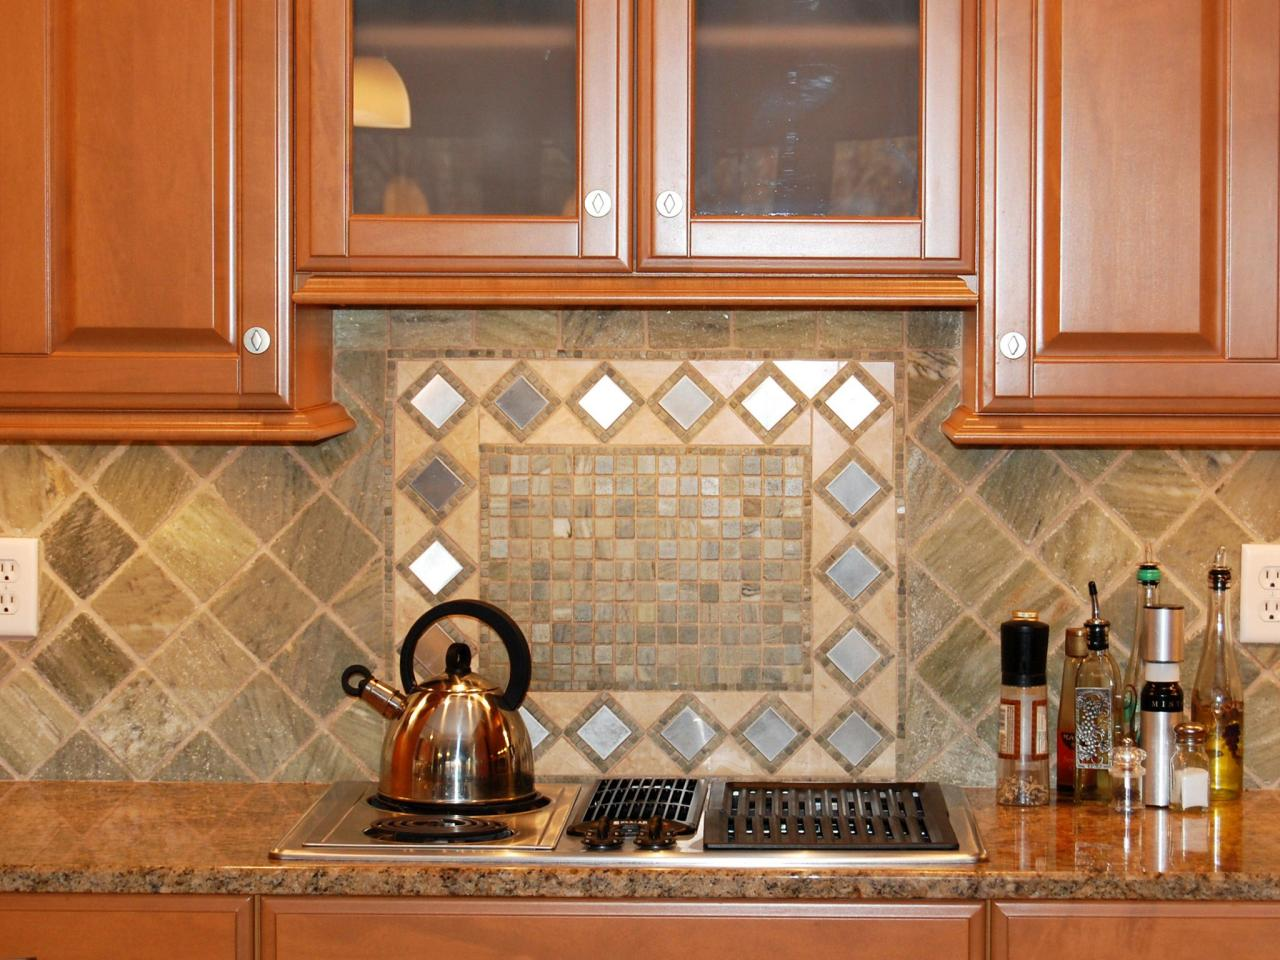 Kitchen Tiles Backsplash Ideas Part - 35: Mosaic Tile Kitchen Backsplash